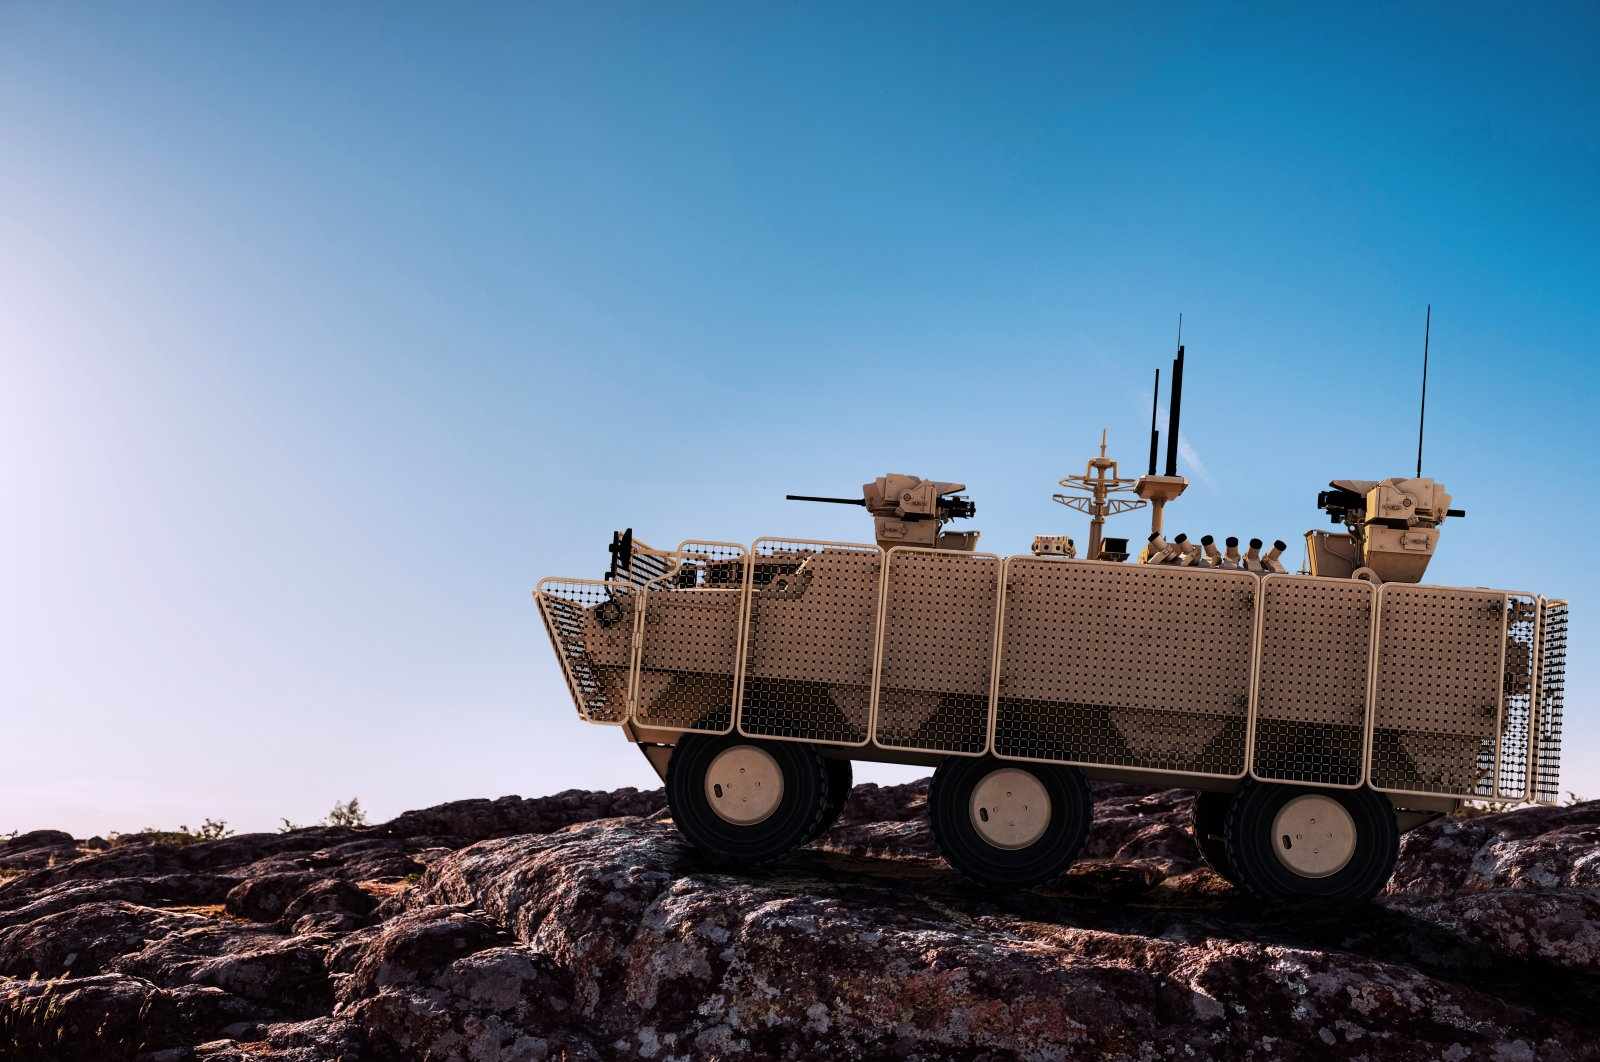 The PARS 6x6 Mine Protected Vehicle produced by the Turkish defense company FNSS. (Photo Courtesy of the Presidency of Defense Industries via AA)